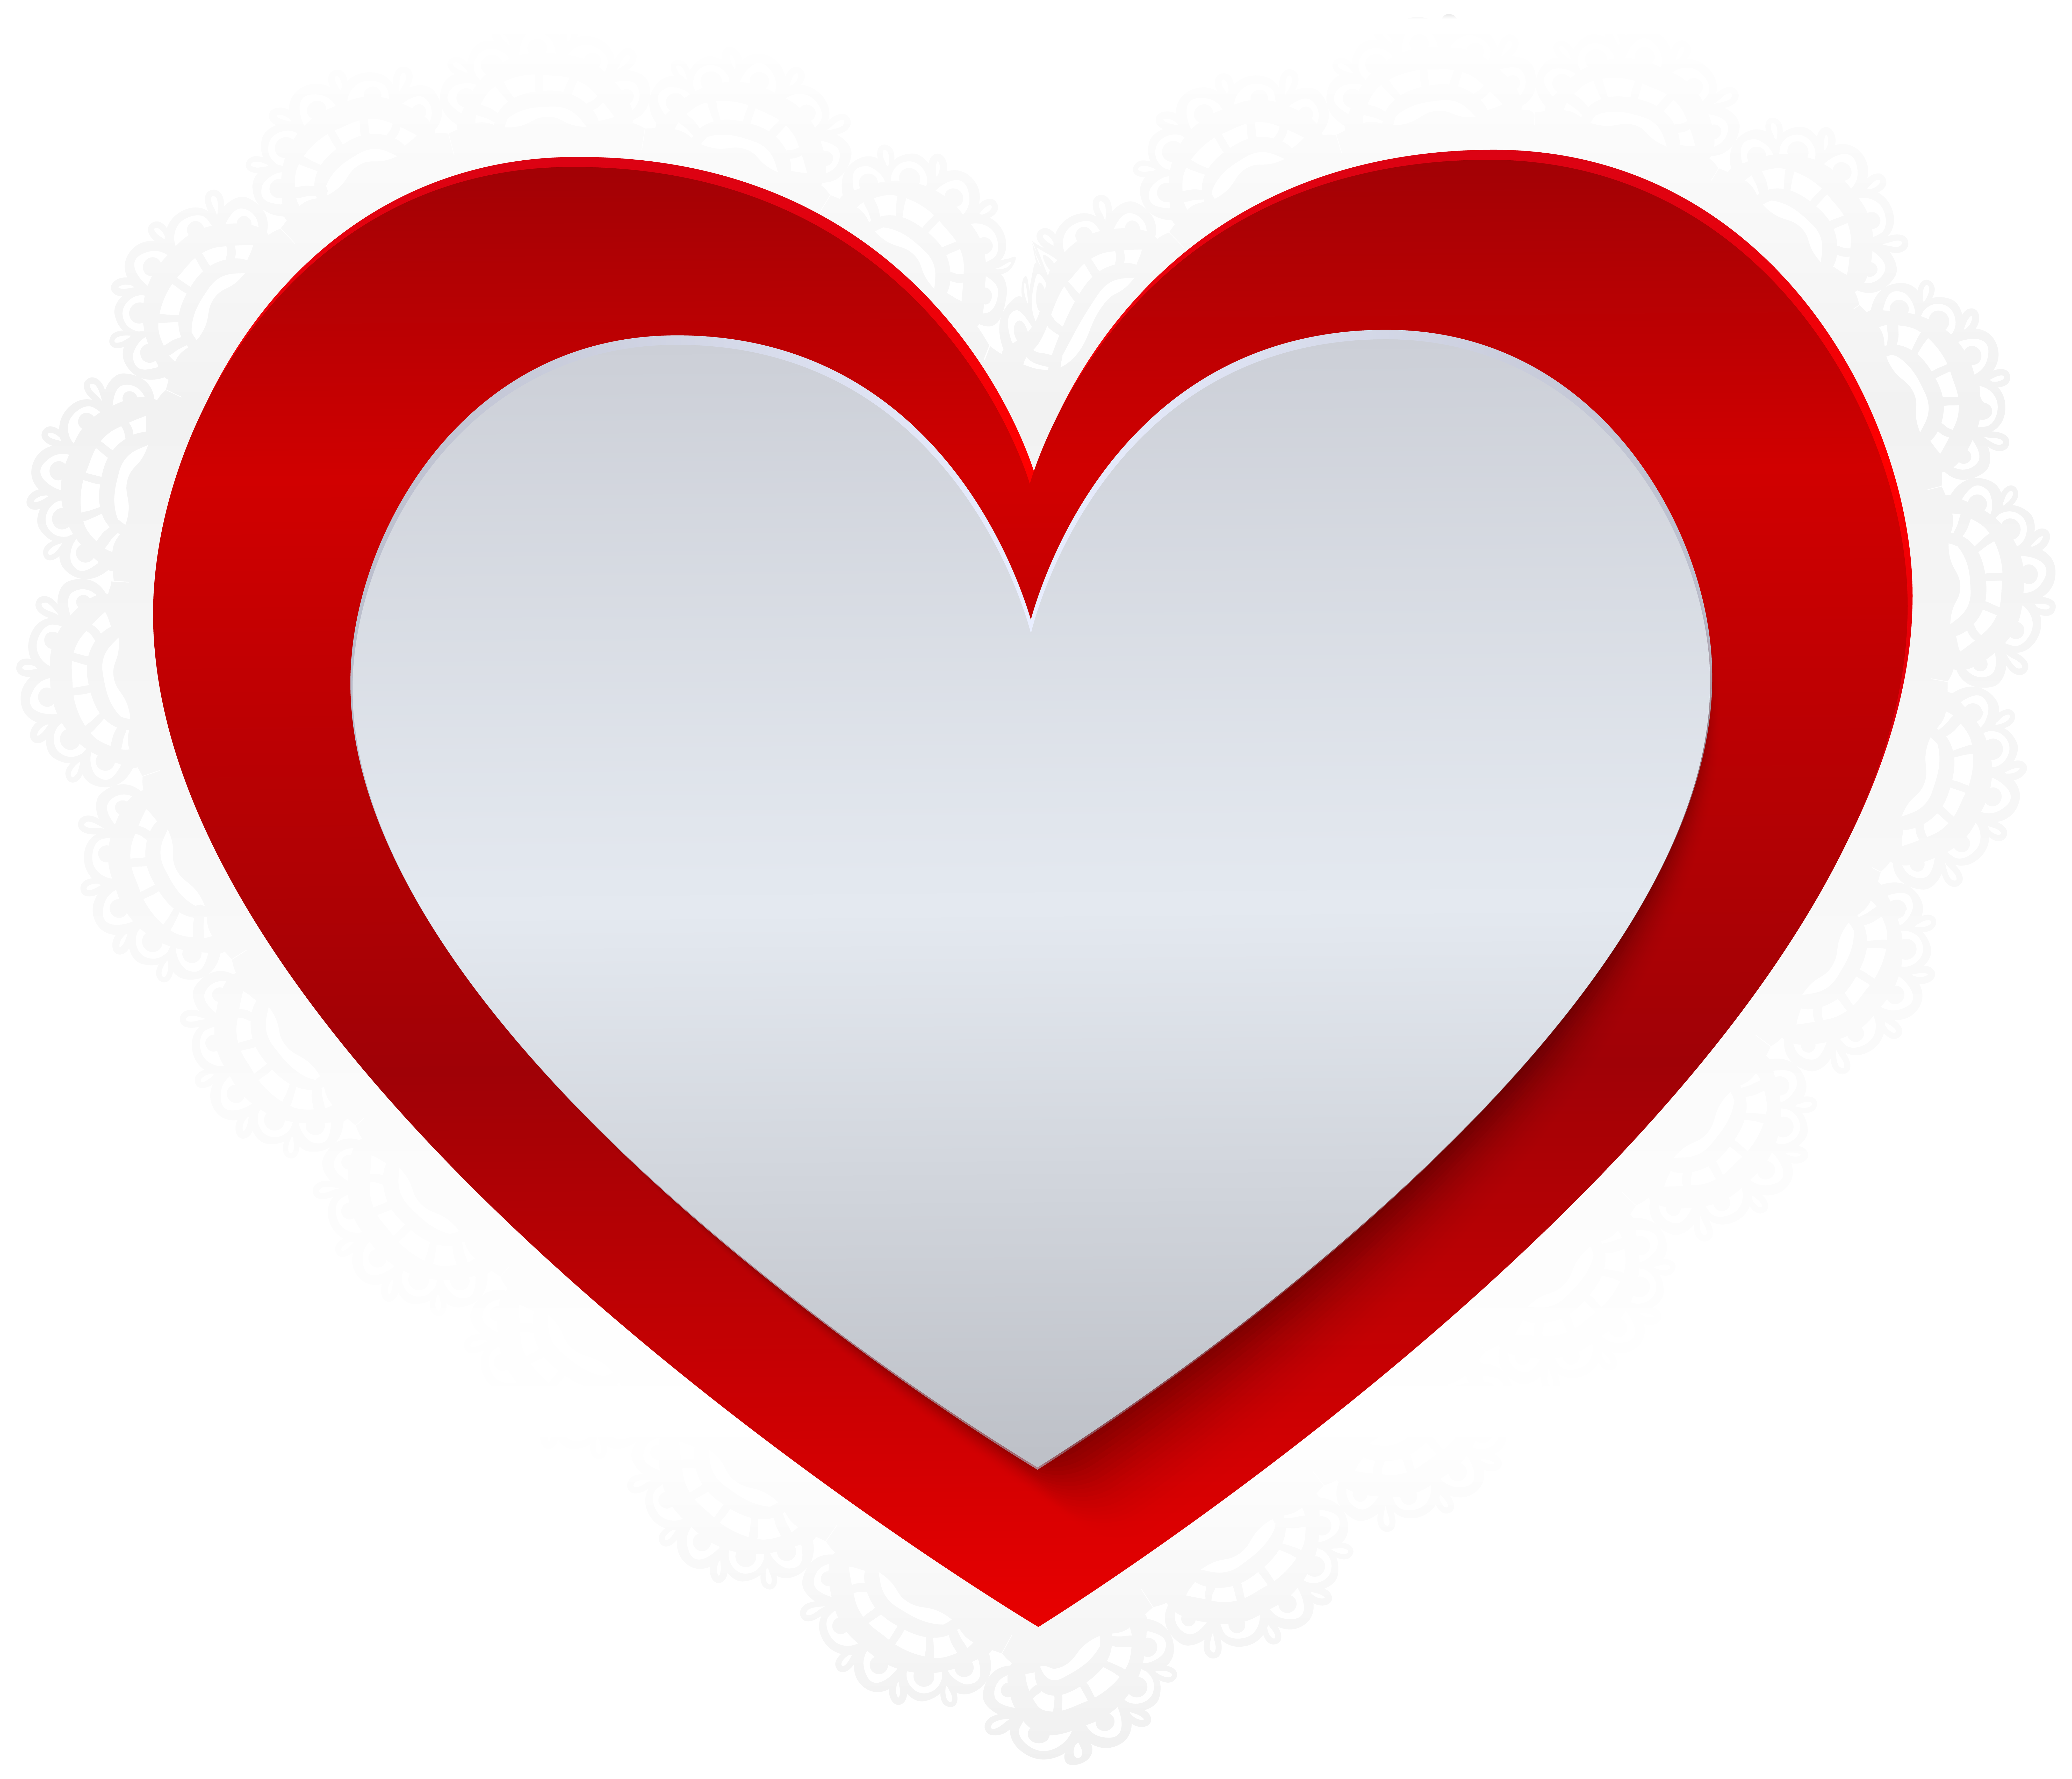 Heart lace clipart graphic transparent library Heart with Lace Border PNG Clip Art | Gallery Yopriceville - High ... graphic transparent library